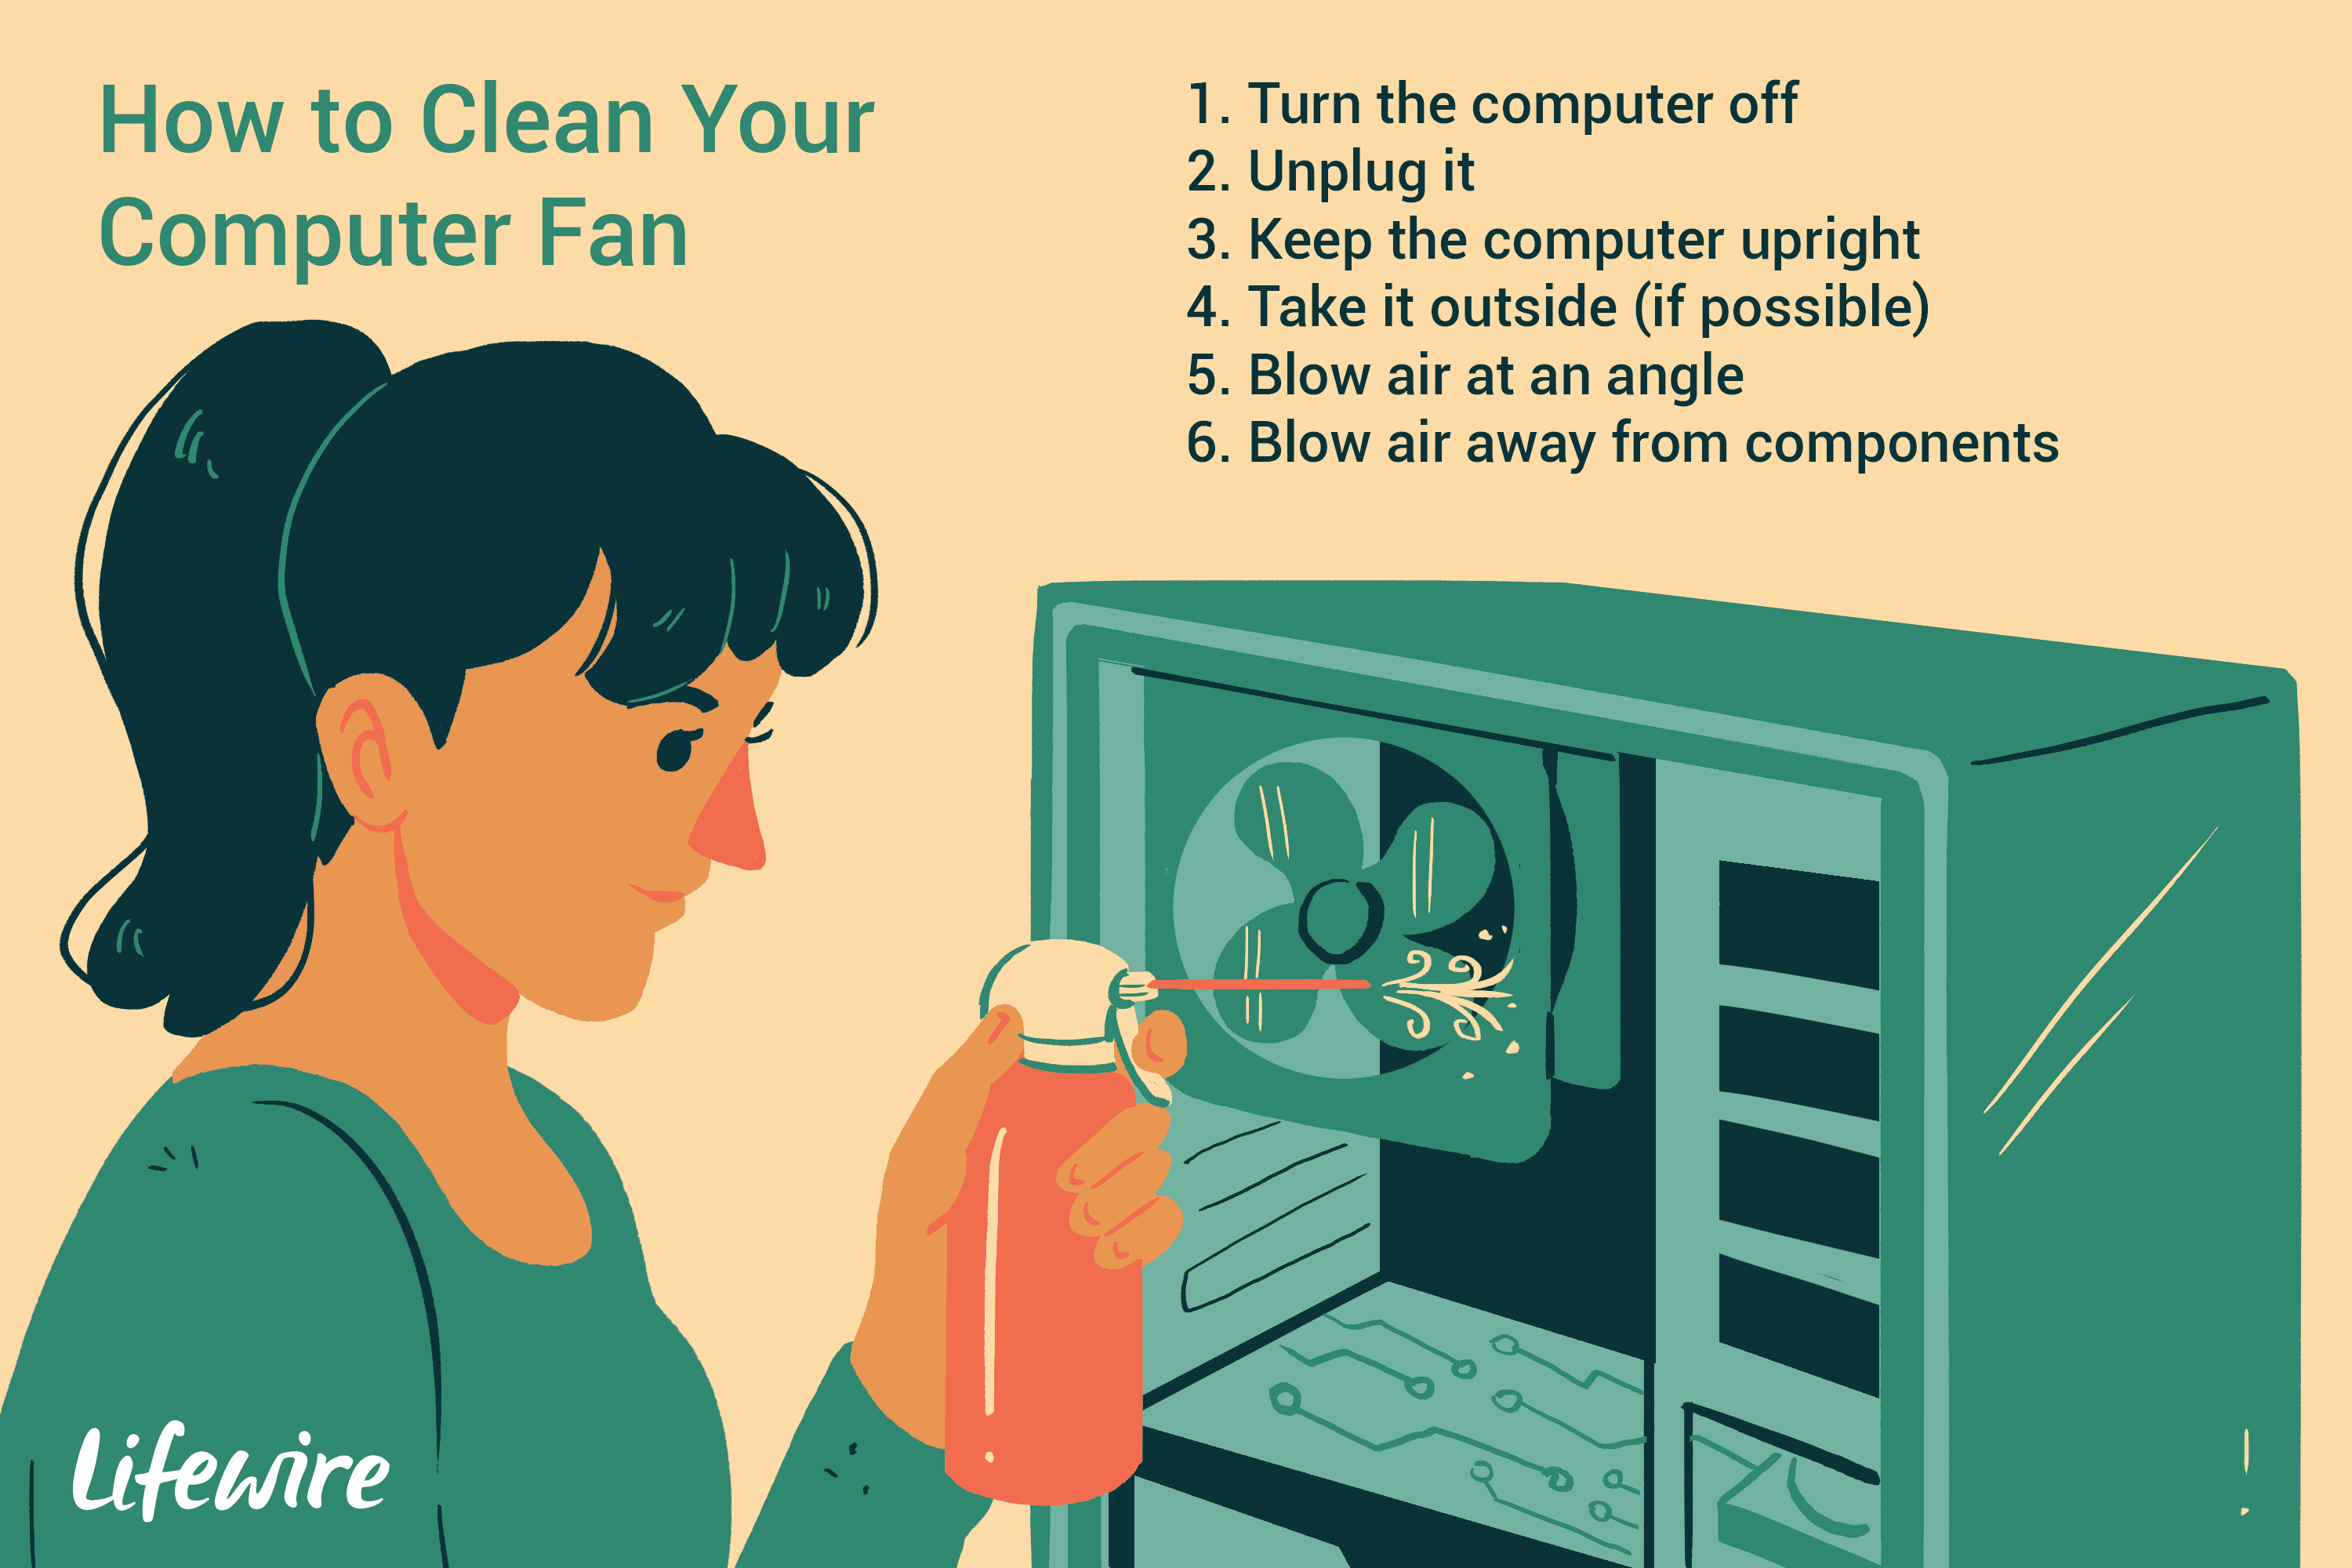 An Ilration Of A Woman Cleaning Computer Fan With Canned Air